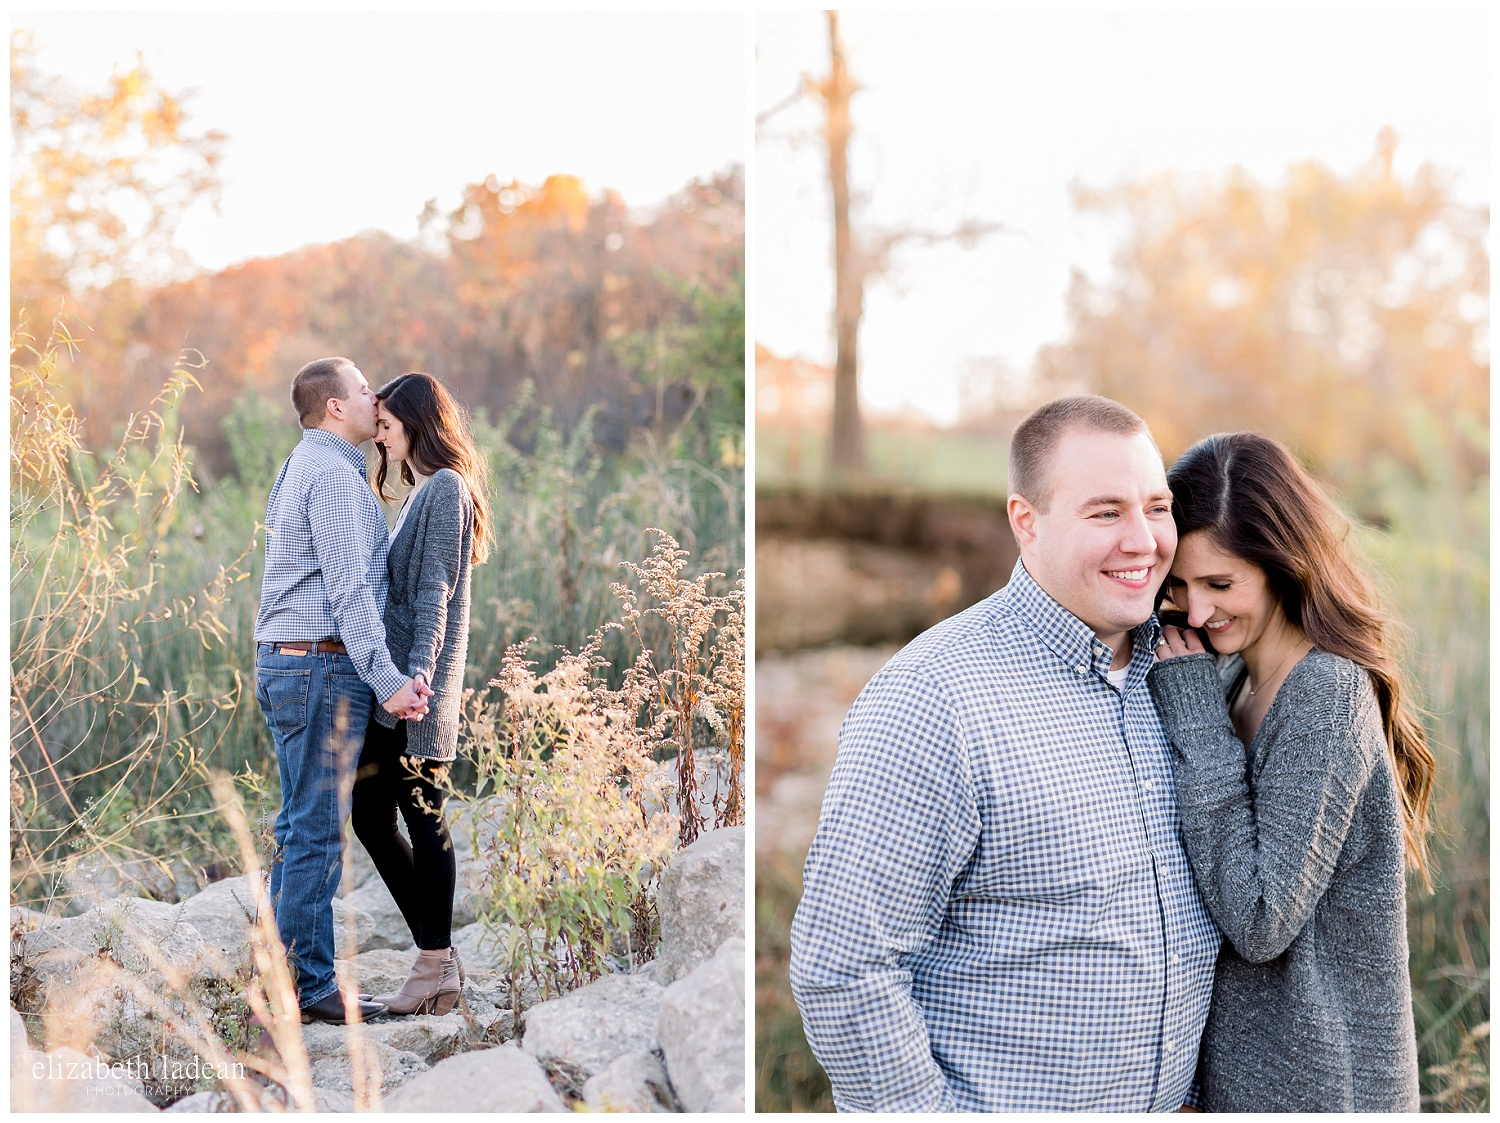 Kansas-City-Fall-Engagement-Photography-S+D-2018-elizabeth-ladean-photography-photo_2395.jpg